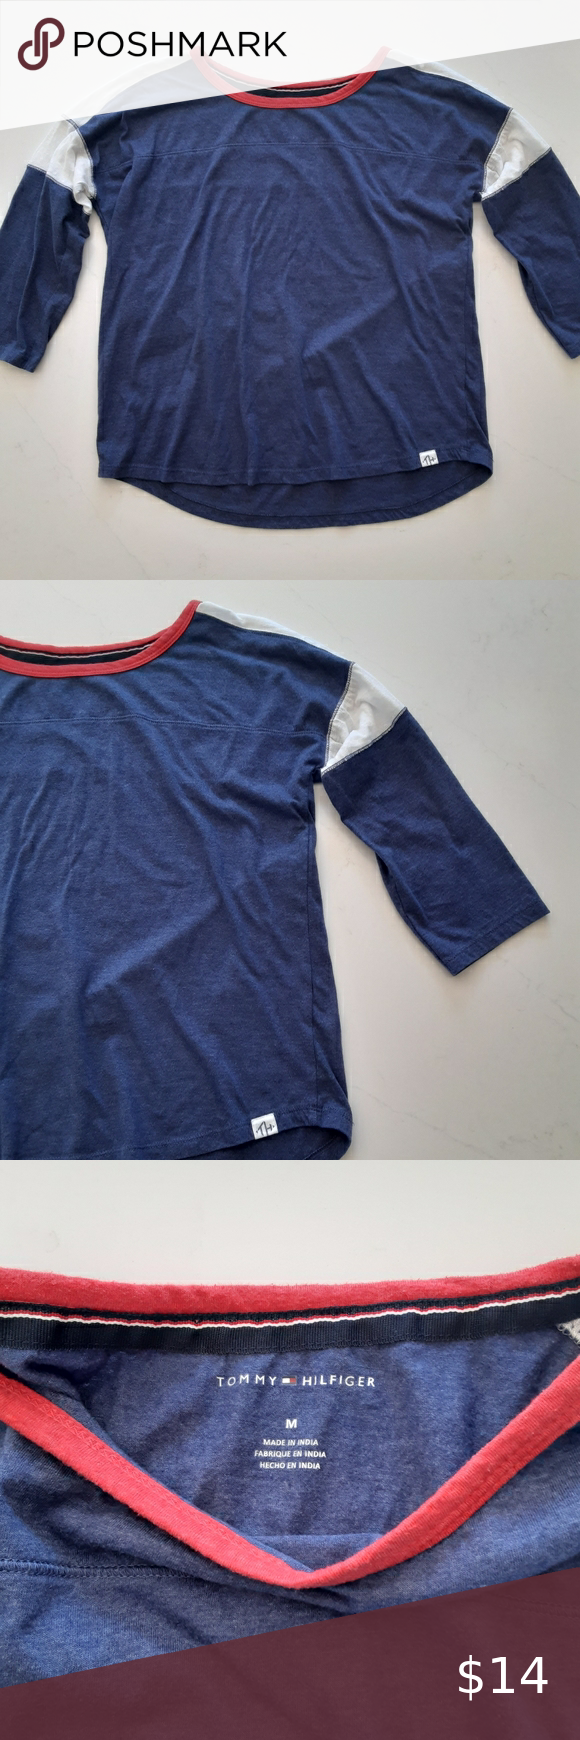 Tommy Hilfiger Womens Size M Cropped Sleeve Tee Tommy Hilfiger Womens Size M Cropped Sleeve Tee Baseball Style Dar Clothes Design Tommy Hilfiger Sleeves Tees [ 1740 x 580 Pixel ]